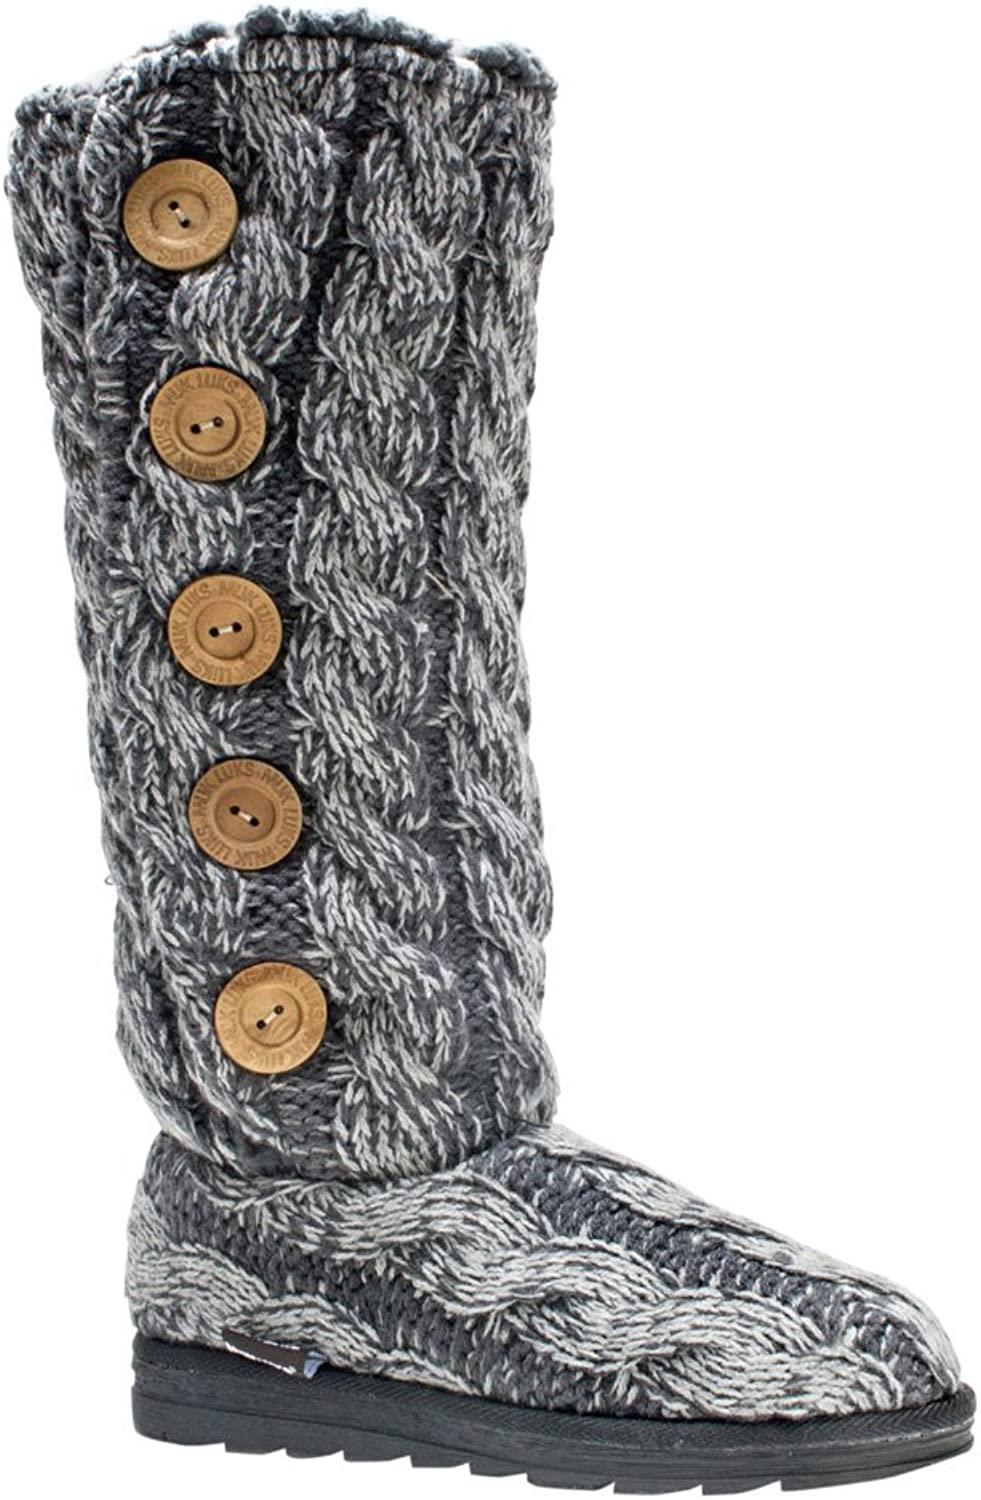 MUK LUKS Women's Malena Lattic Sweater Winter Boot Navy